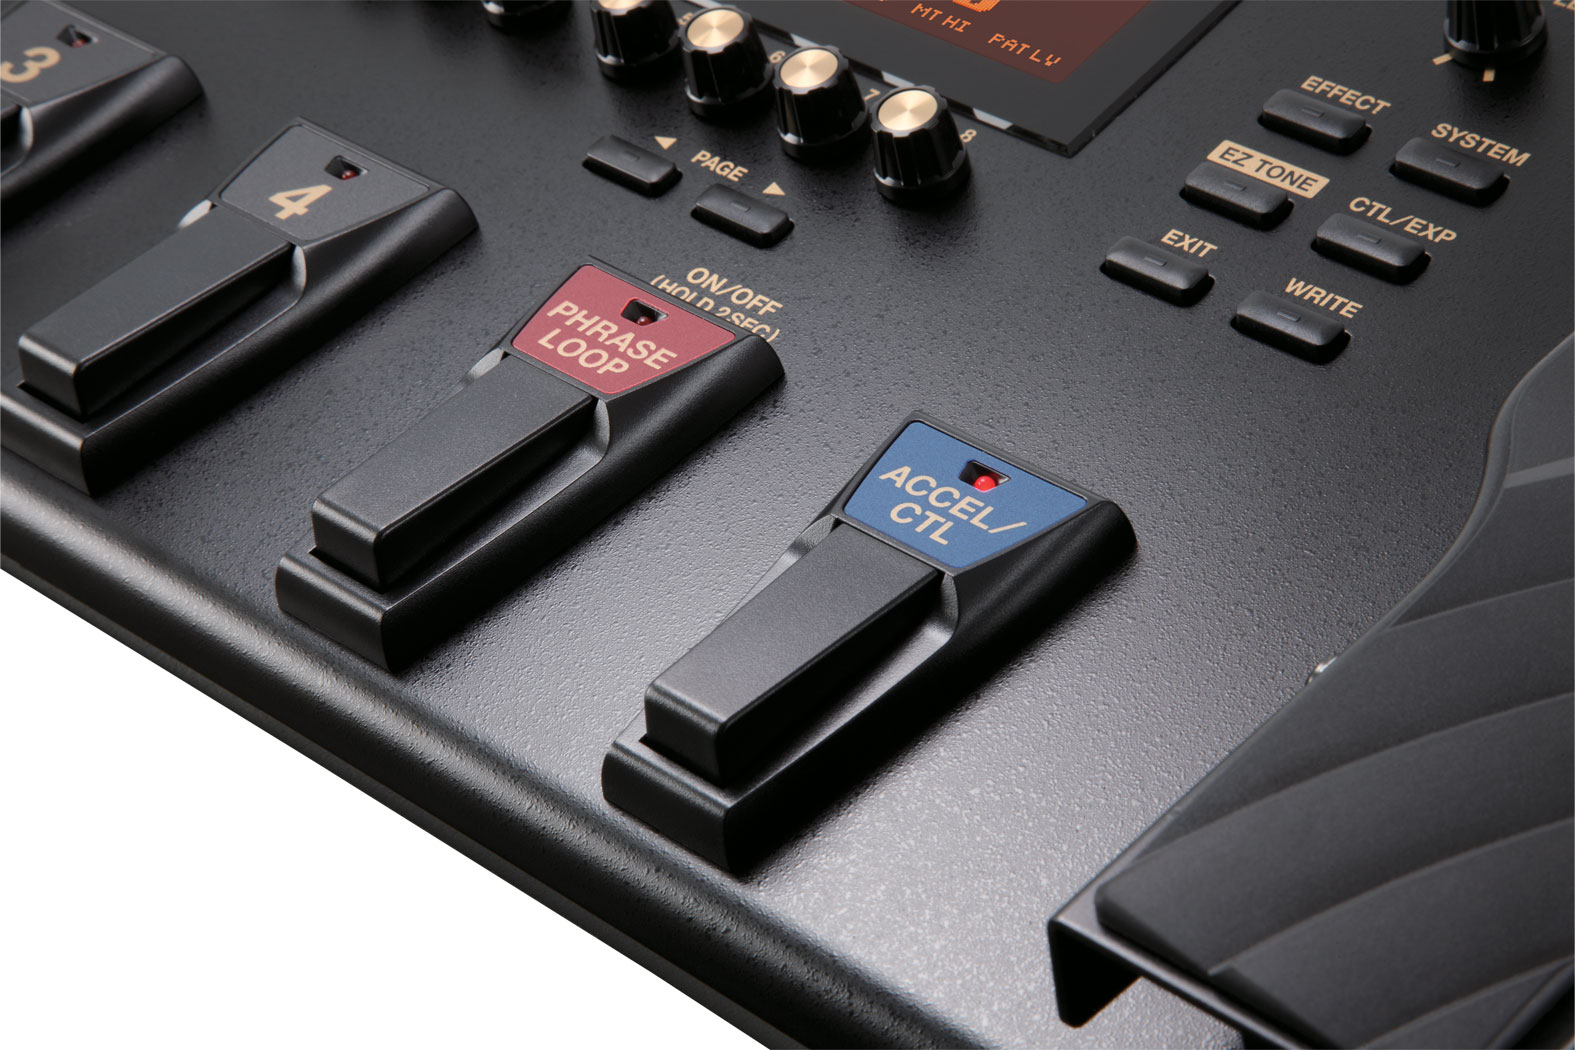 Boss Gt 100 Cosm Amp Effects Processor Re Which Wah Is Best To Mod Into A Proper Vintage